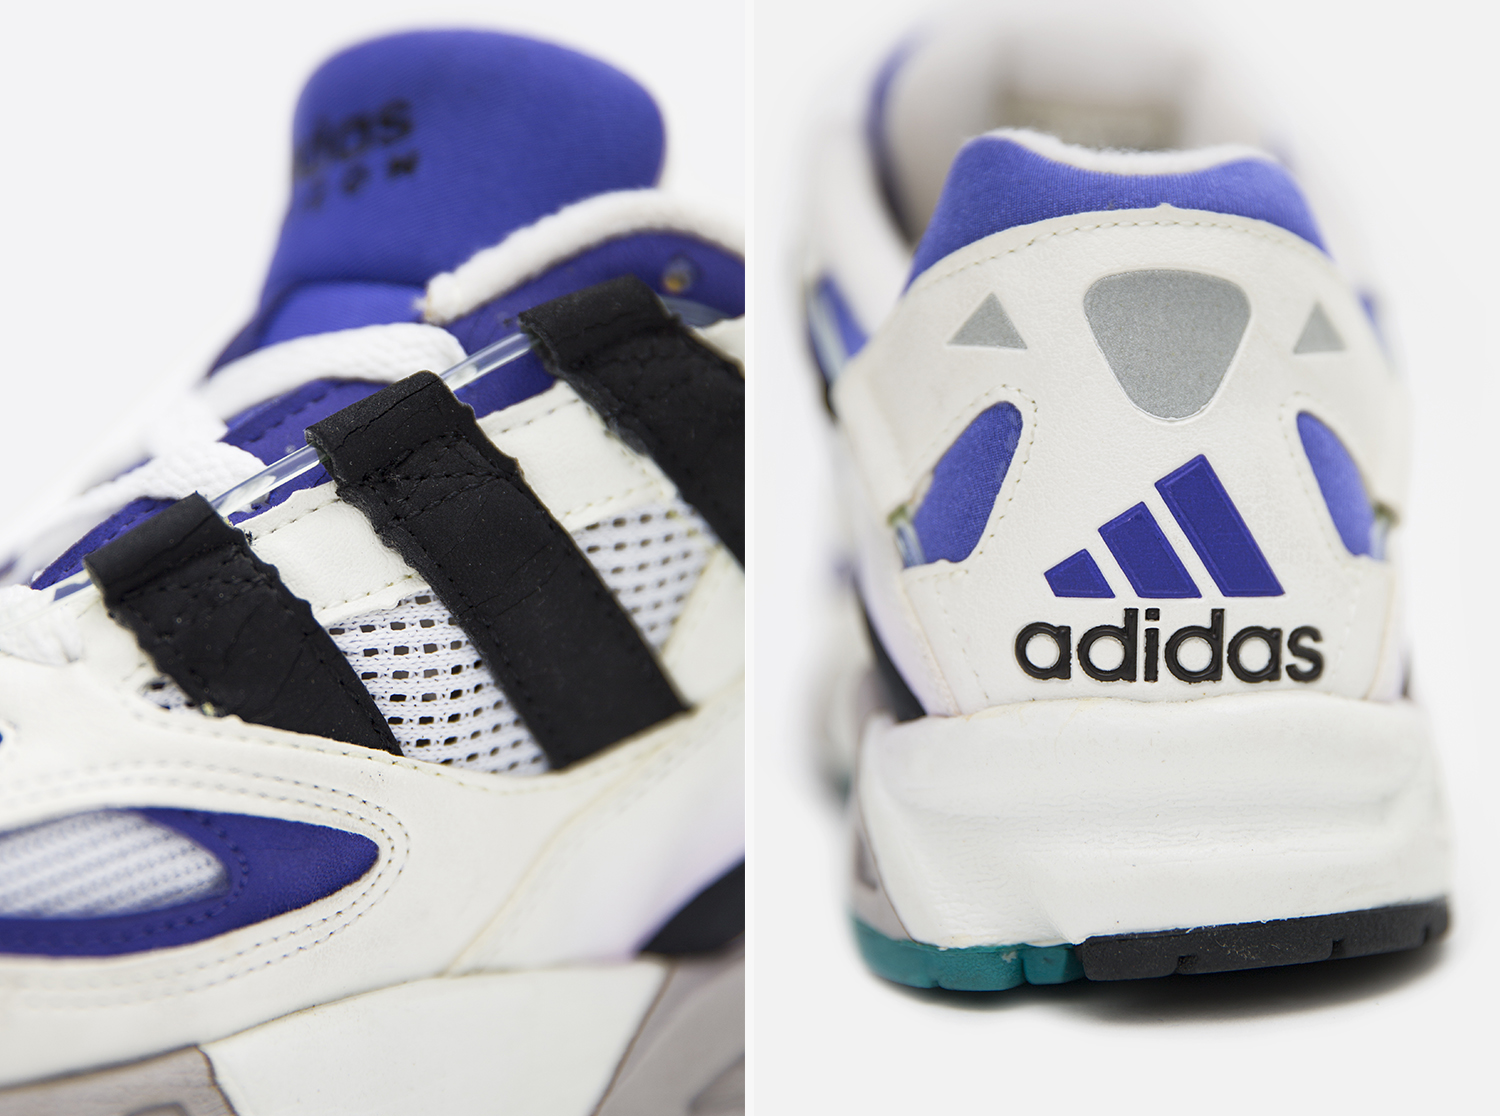 adidas_EQT_Equipment_lock_up_size_hq_exclusive-16